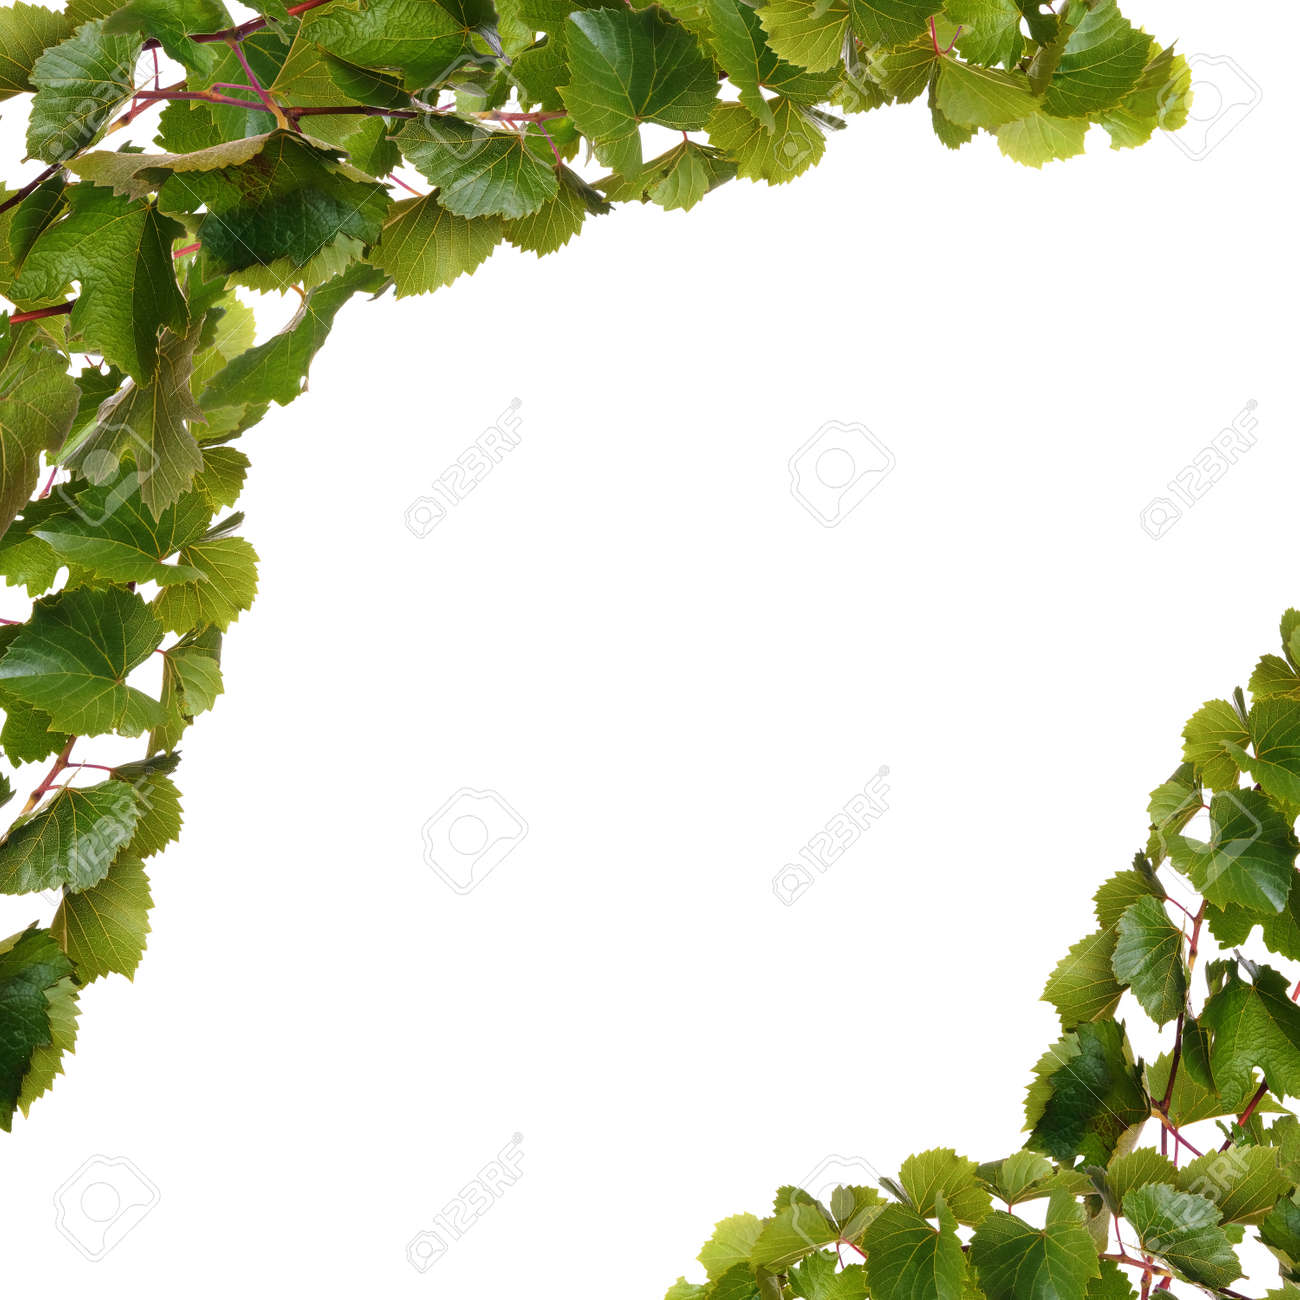 Branches Of Vine Leaves Isolated On White Background Stock Photo Picture And Royalty Free Image Image 89779104